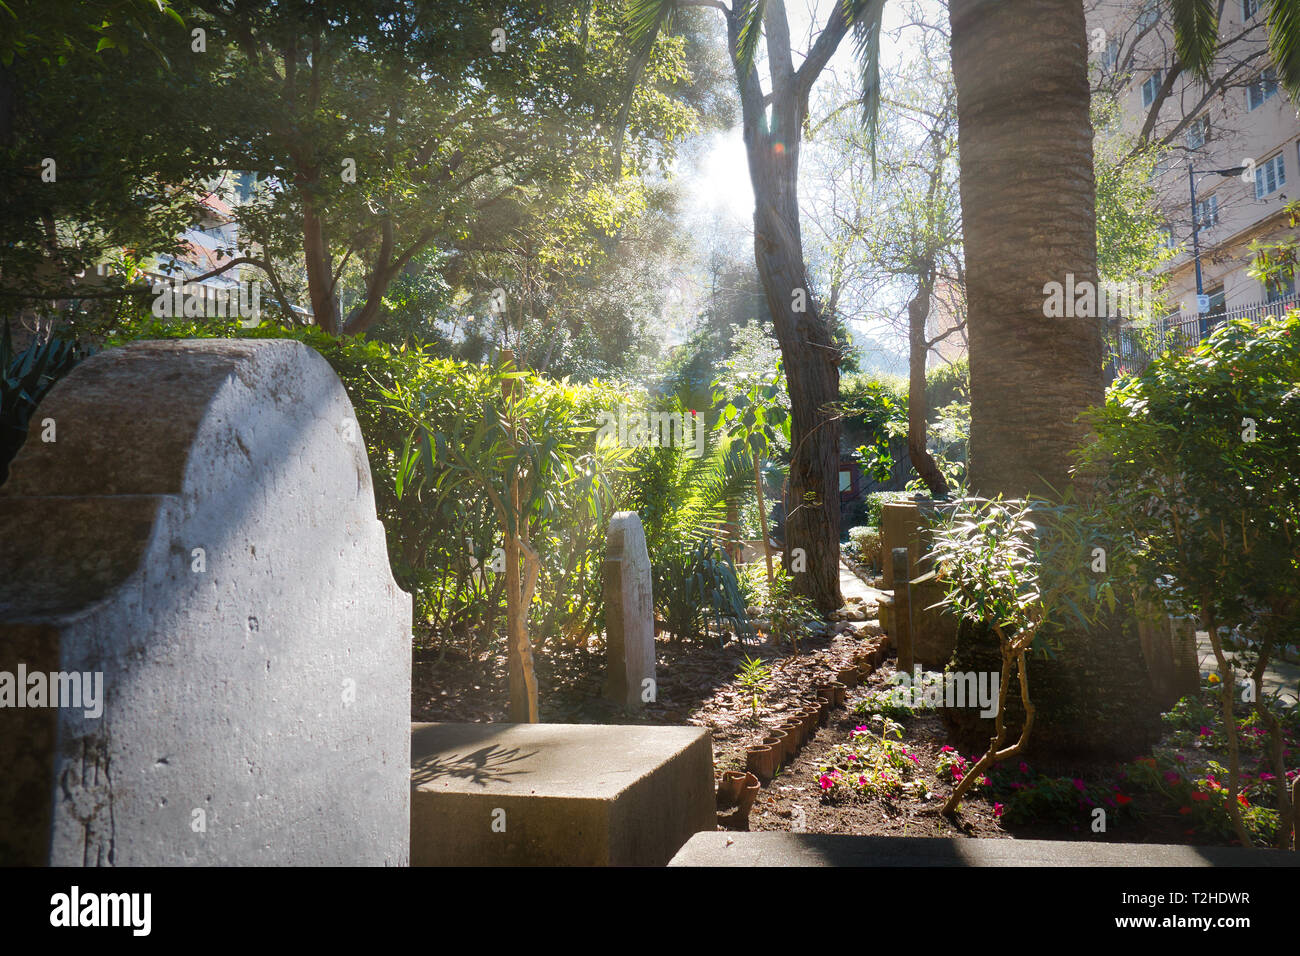 Rays of sunlight among the trees illuminating an ancient tomb in the Trafalgar cemetery, in Gibraltar Stock Photo